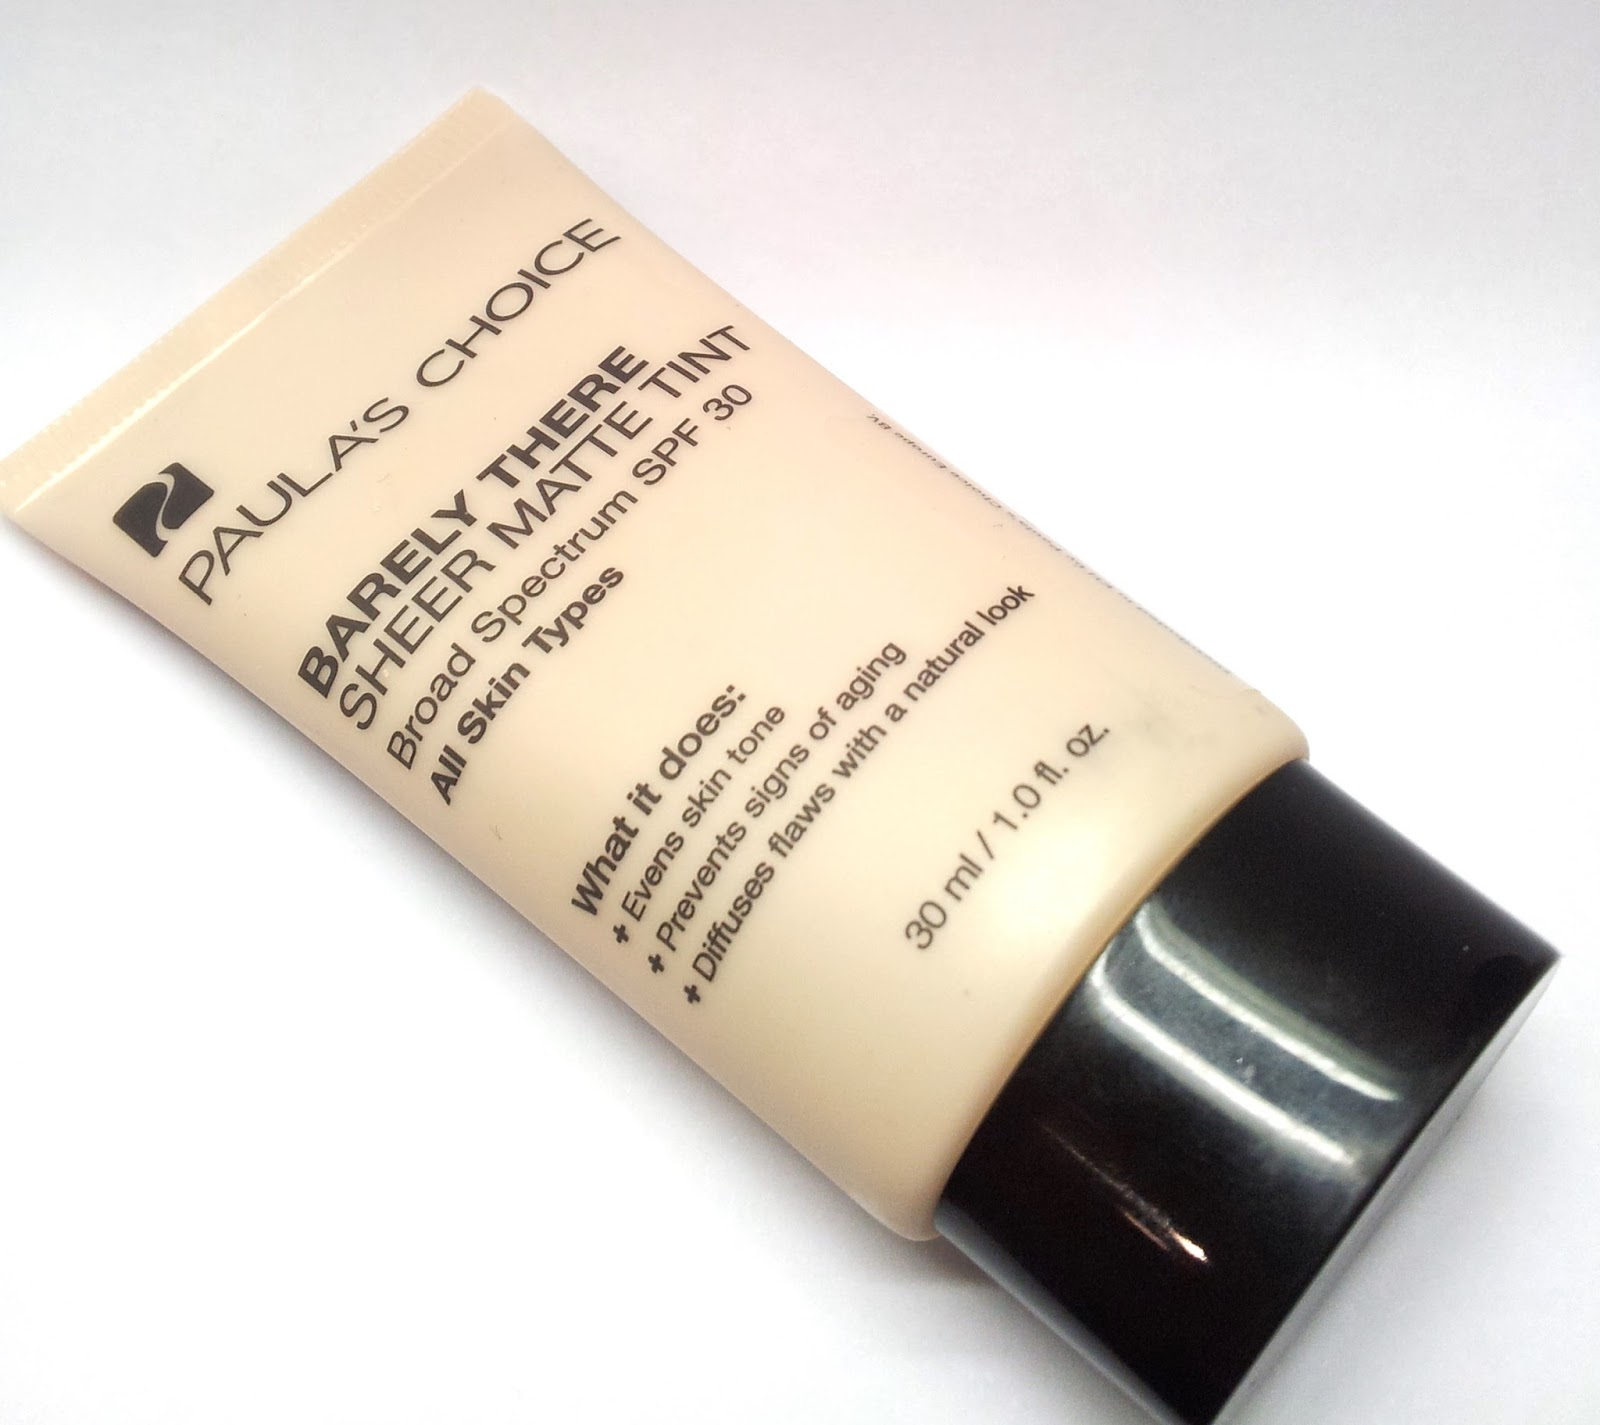 Paula's Choice: Barely there sheer matte tint SPF 30 FAIR